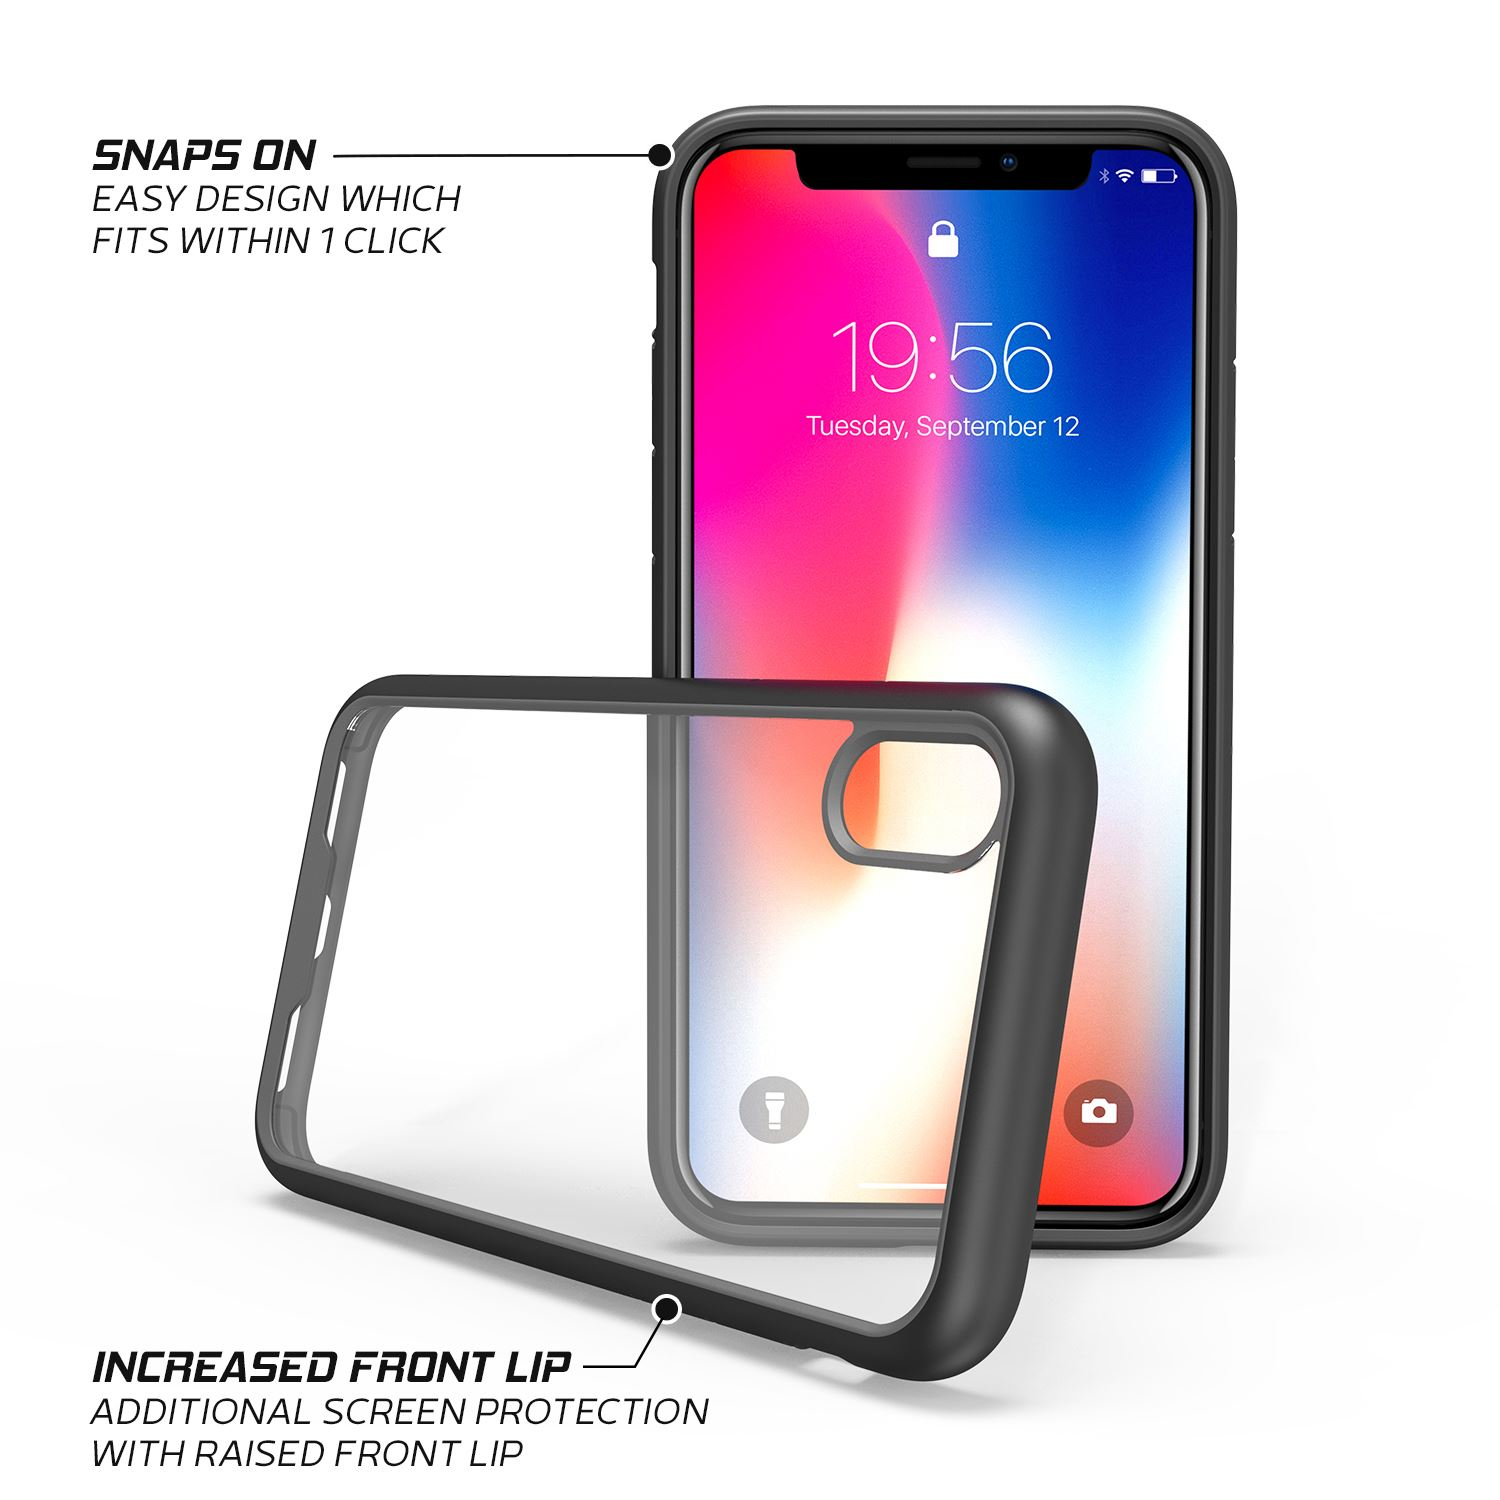 thumbnail 23 - For Apple iPhone XR Xs Max X 8 7 Plus 6 Se 2020 Case Cover Clear Shockproof Thin